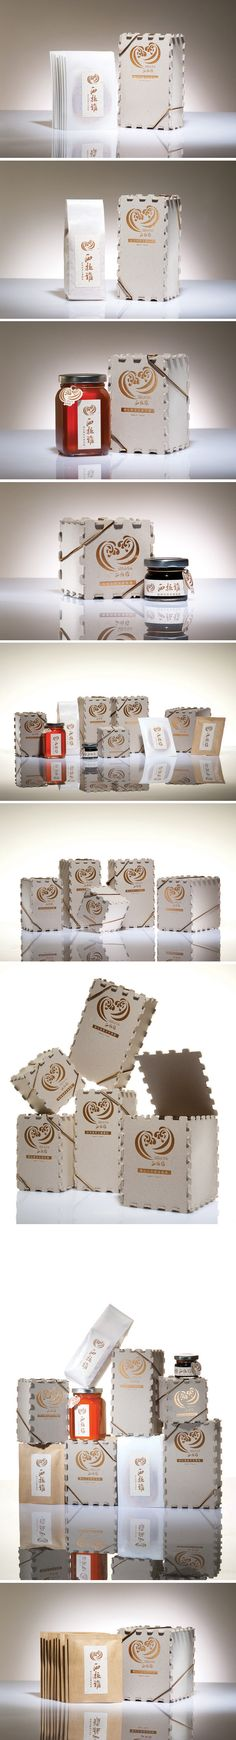 Siraya Harvest Series by GIDEA GROUP simplicity and beauty in #packaging PD